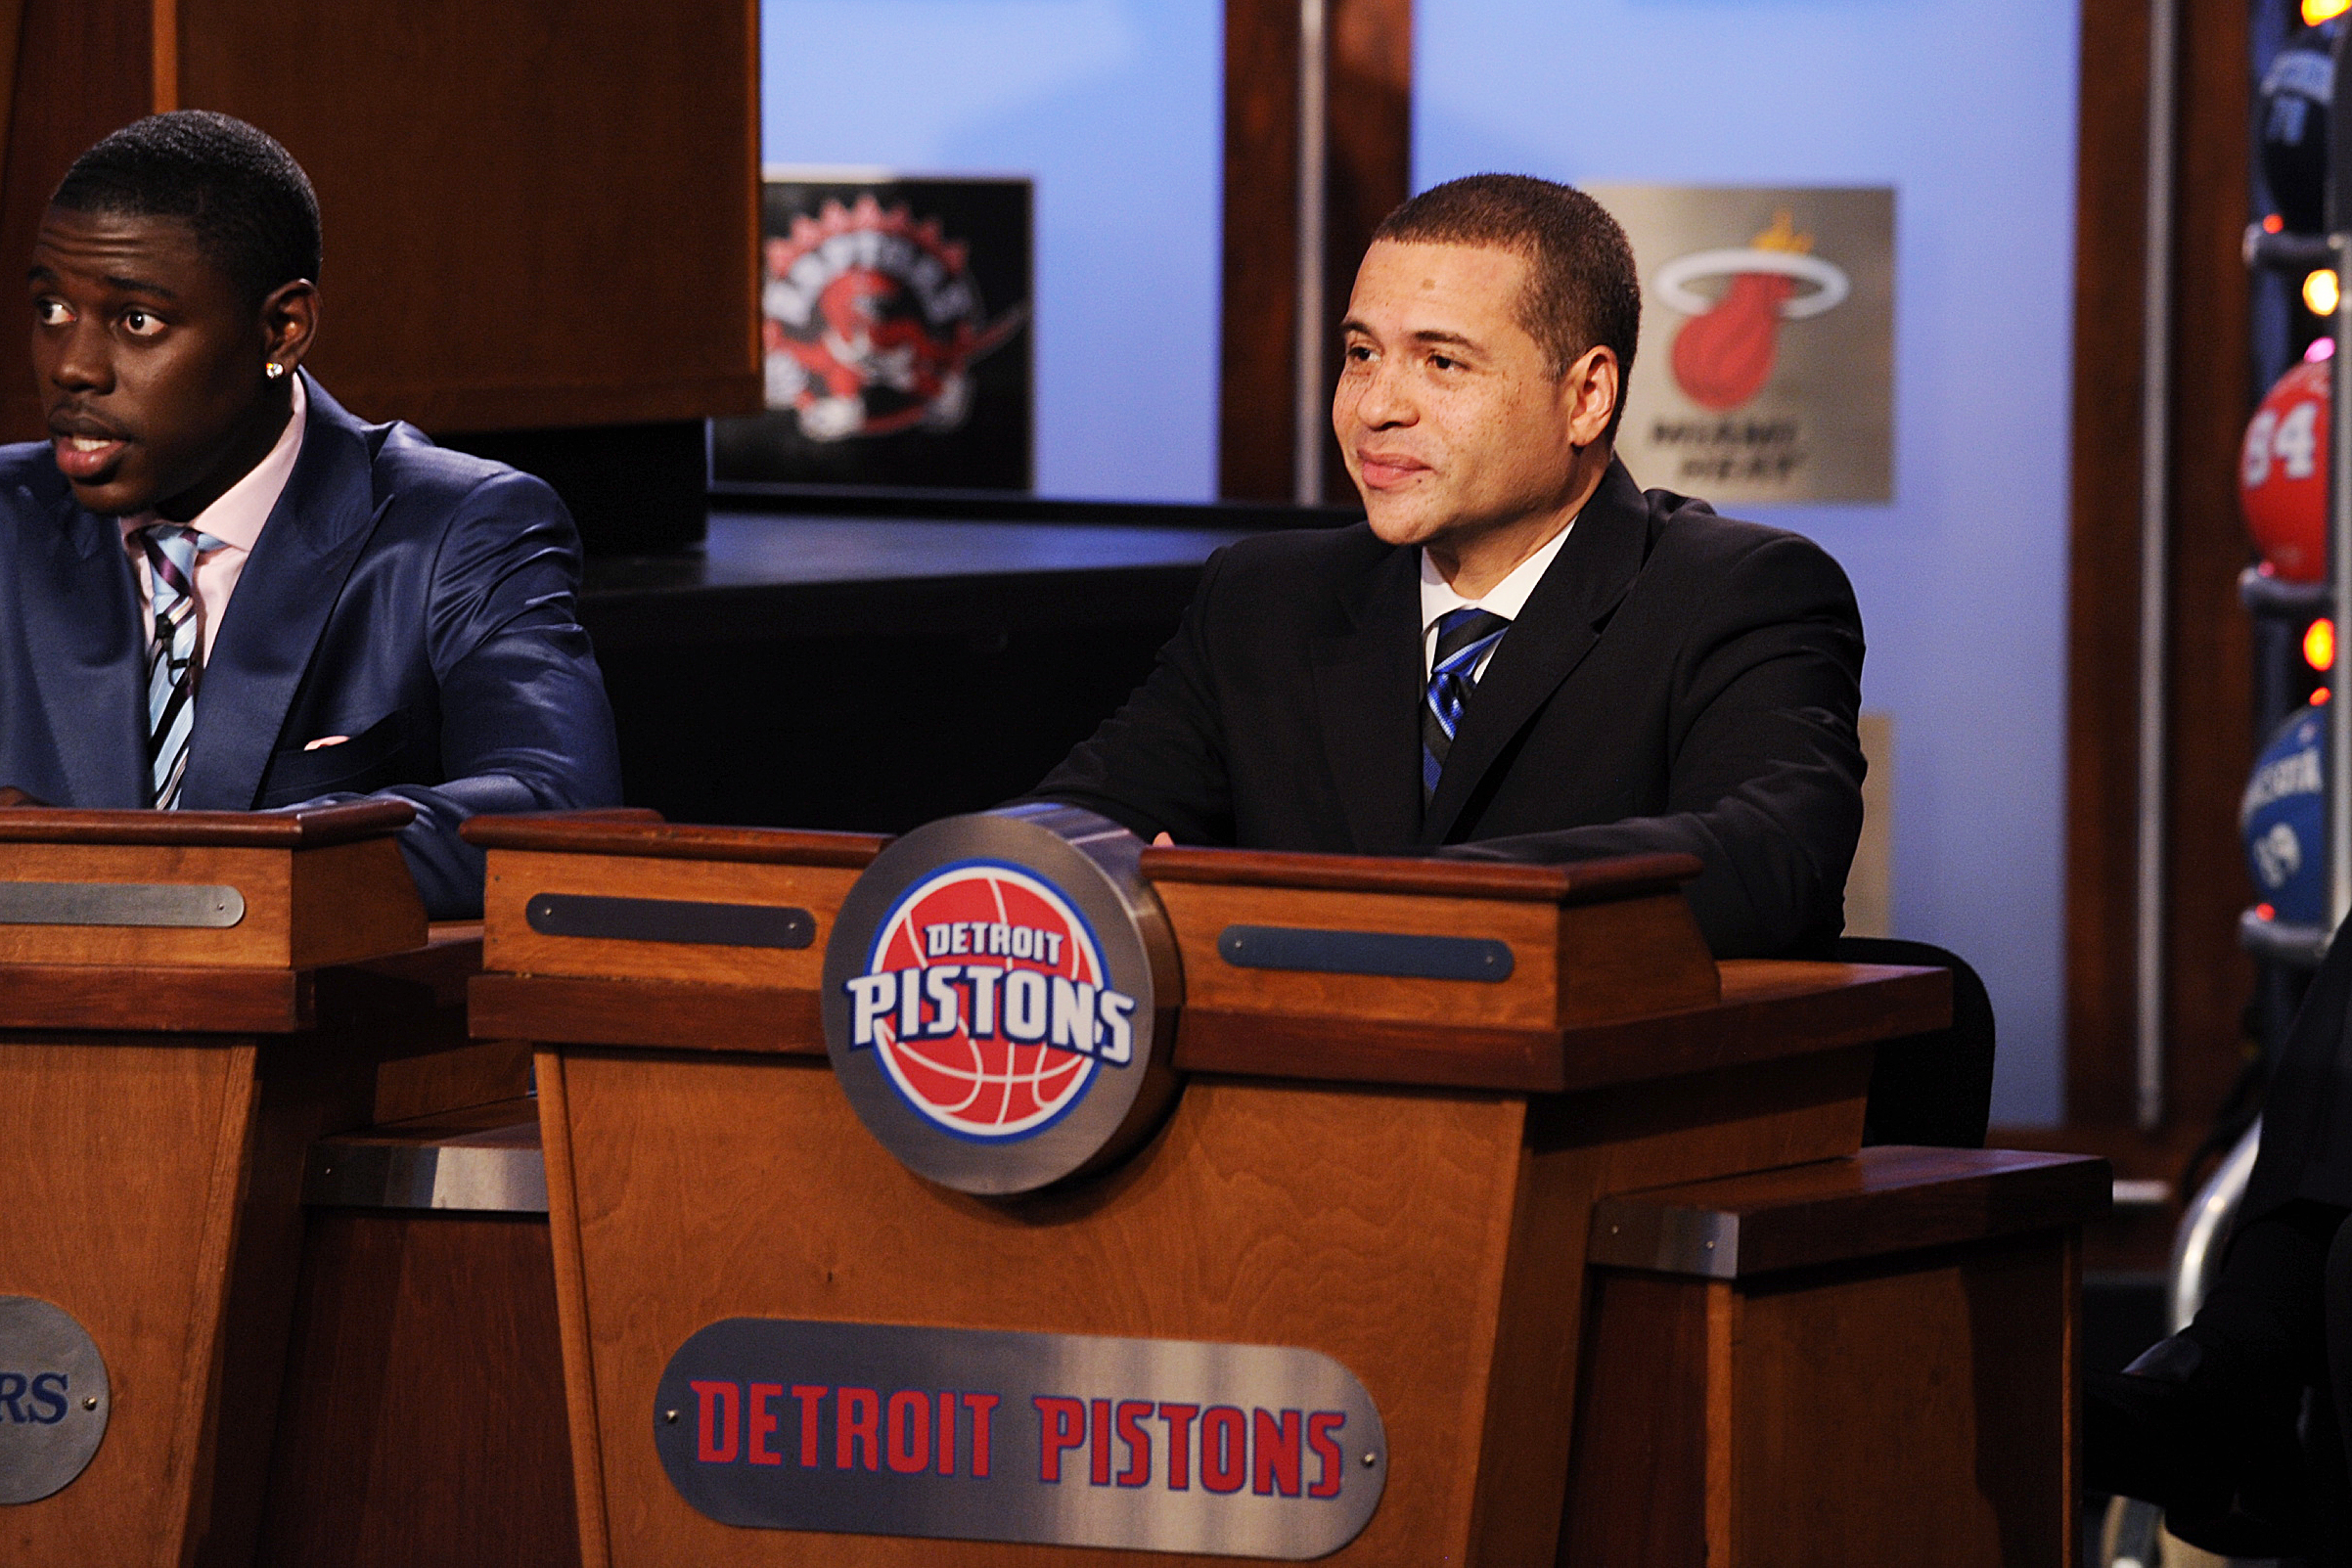 Scott Perry, VP of Basketball Operations of the Detroit Pistons looks on during the 2010 NBA Draft Lottery at the Studios at NBA Entertainment on May 18, 2010 in Secaucus, New Jersey.